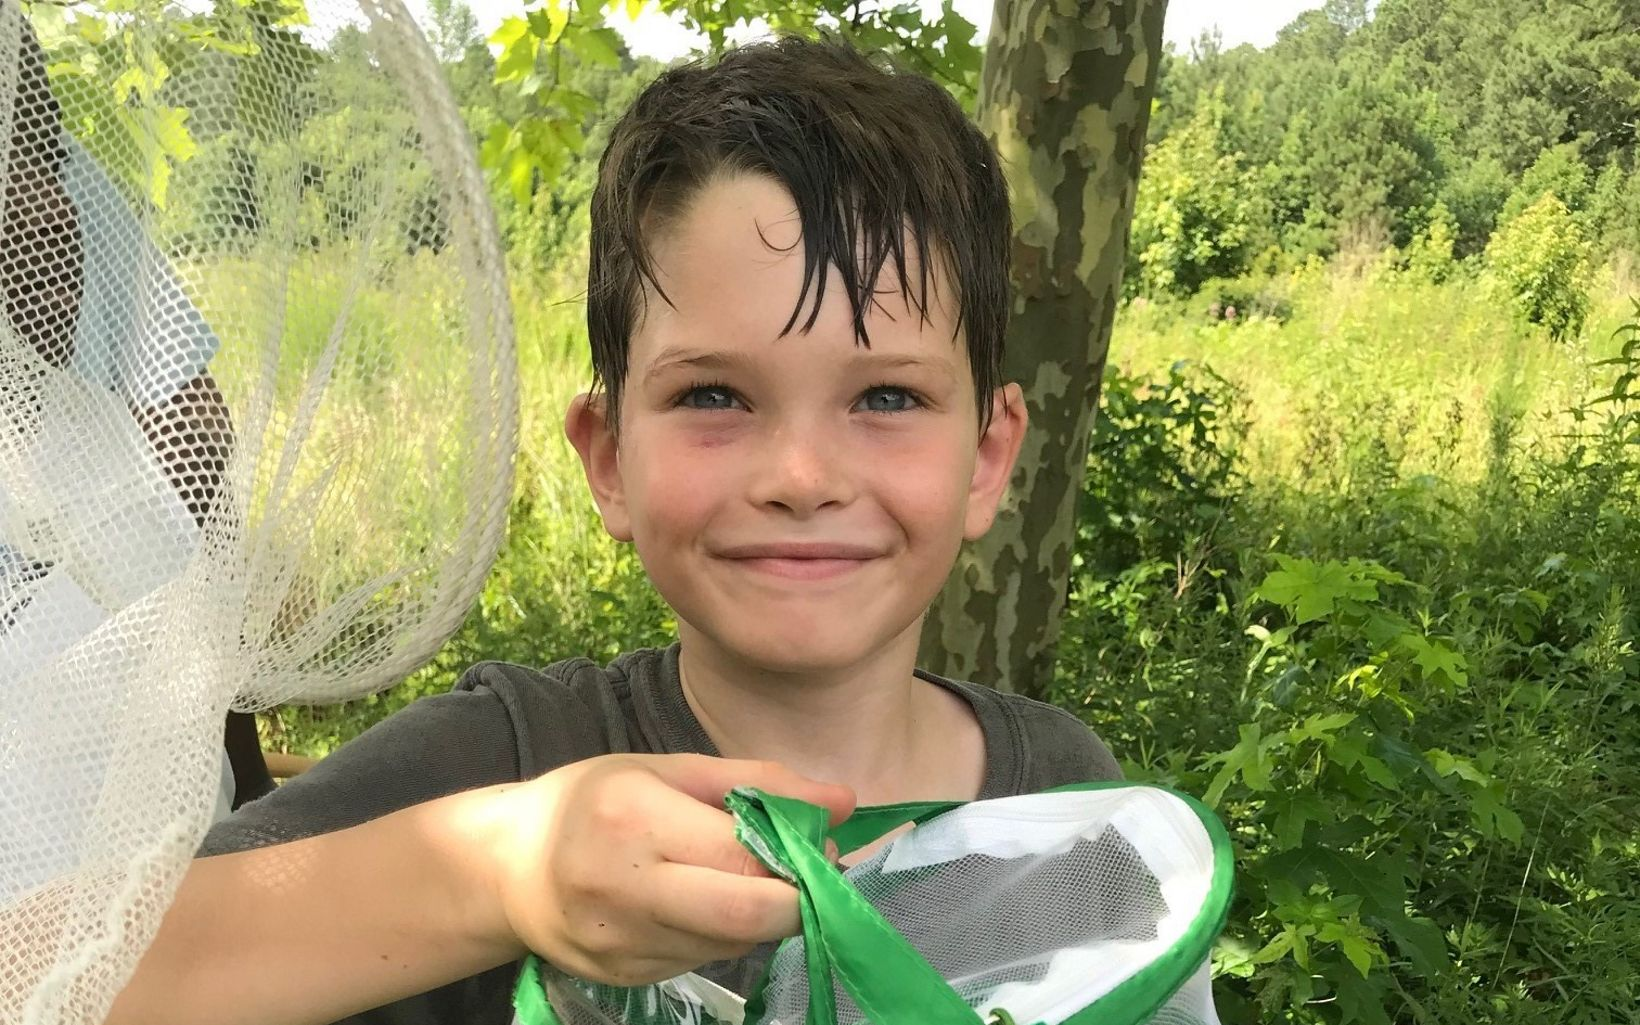 A boy holds up a butterfly trap showing what he has collected.